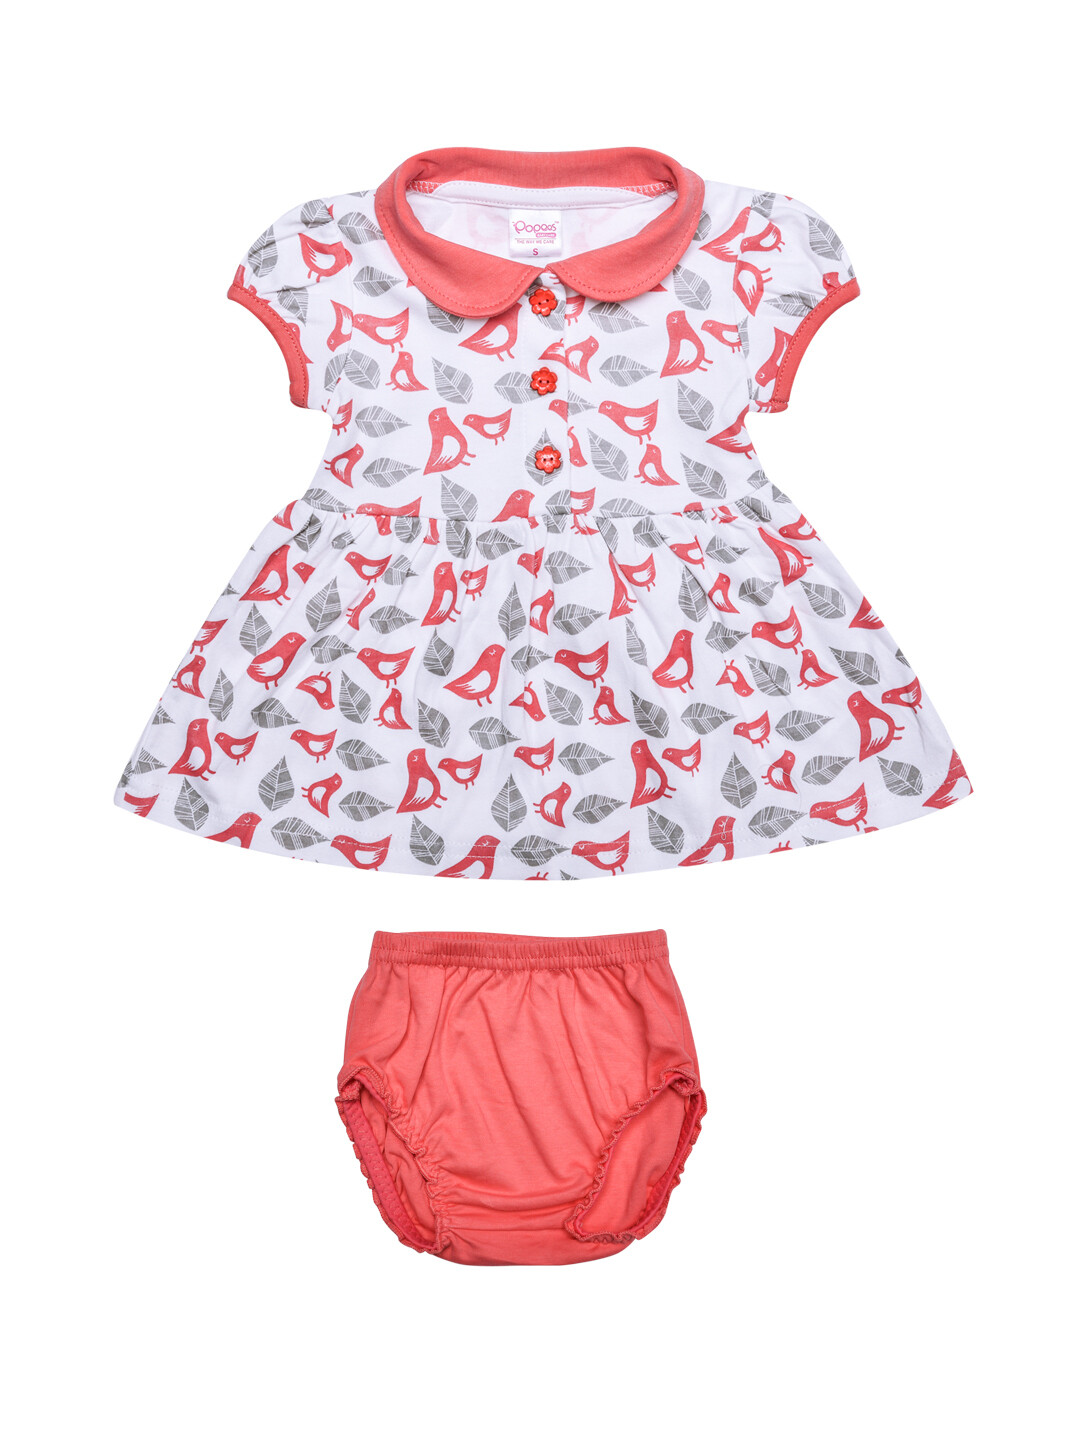 Amya Corel Half Sleeve Bird Print Frock with Bloomer